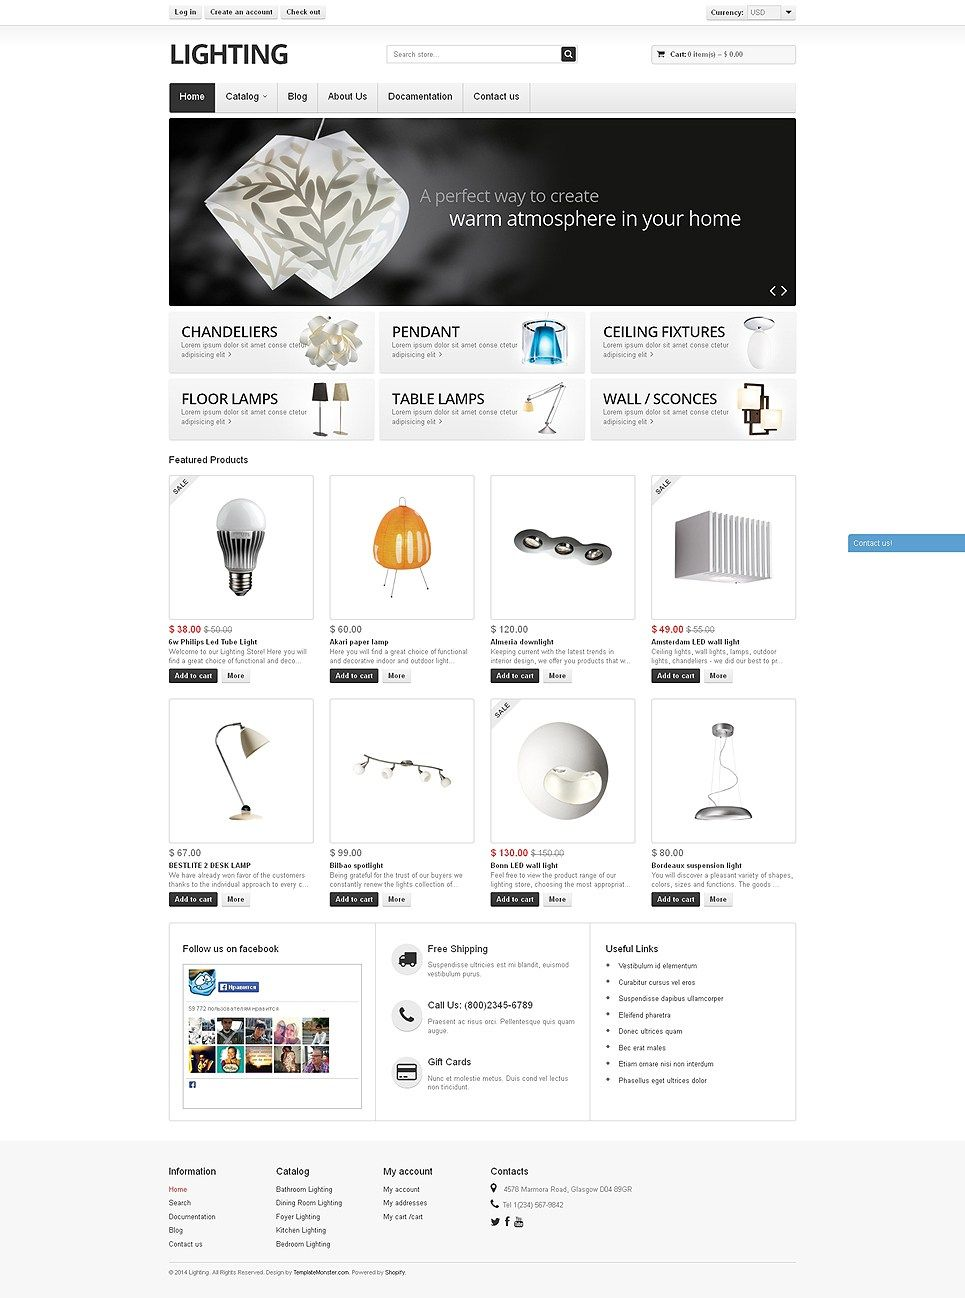 Awesome Home Decoration Plumbing Flooring And Lighting Store Shopify Themes